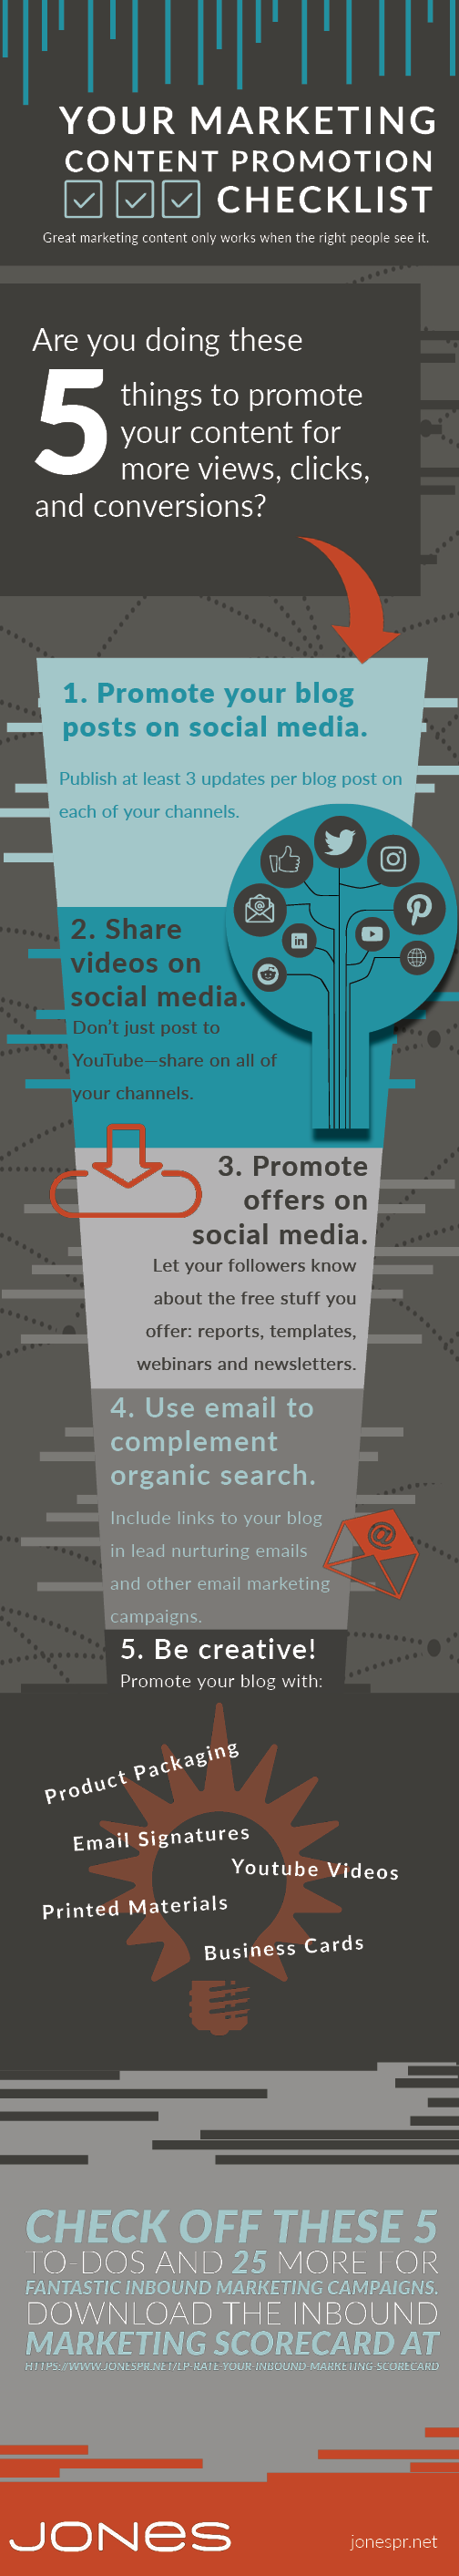 5 Ways To Promote Your Marketing Content (infographic)